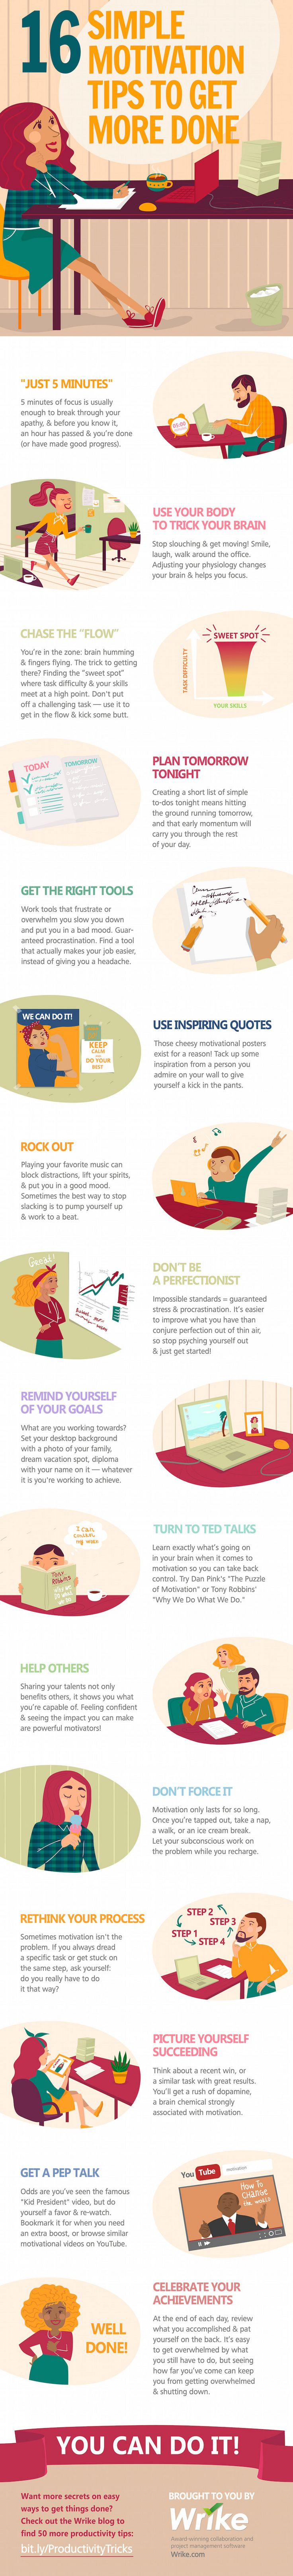 Increase your motivation and productivity with these ways to motivate yourself and get more done.